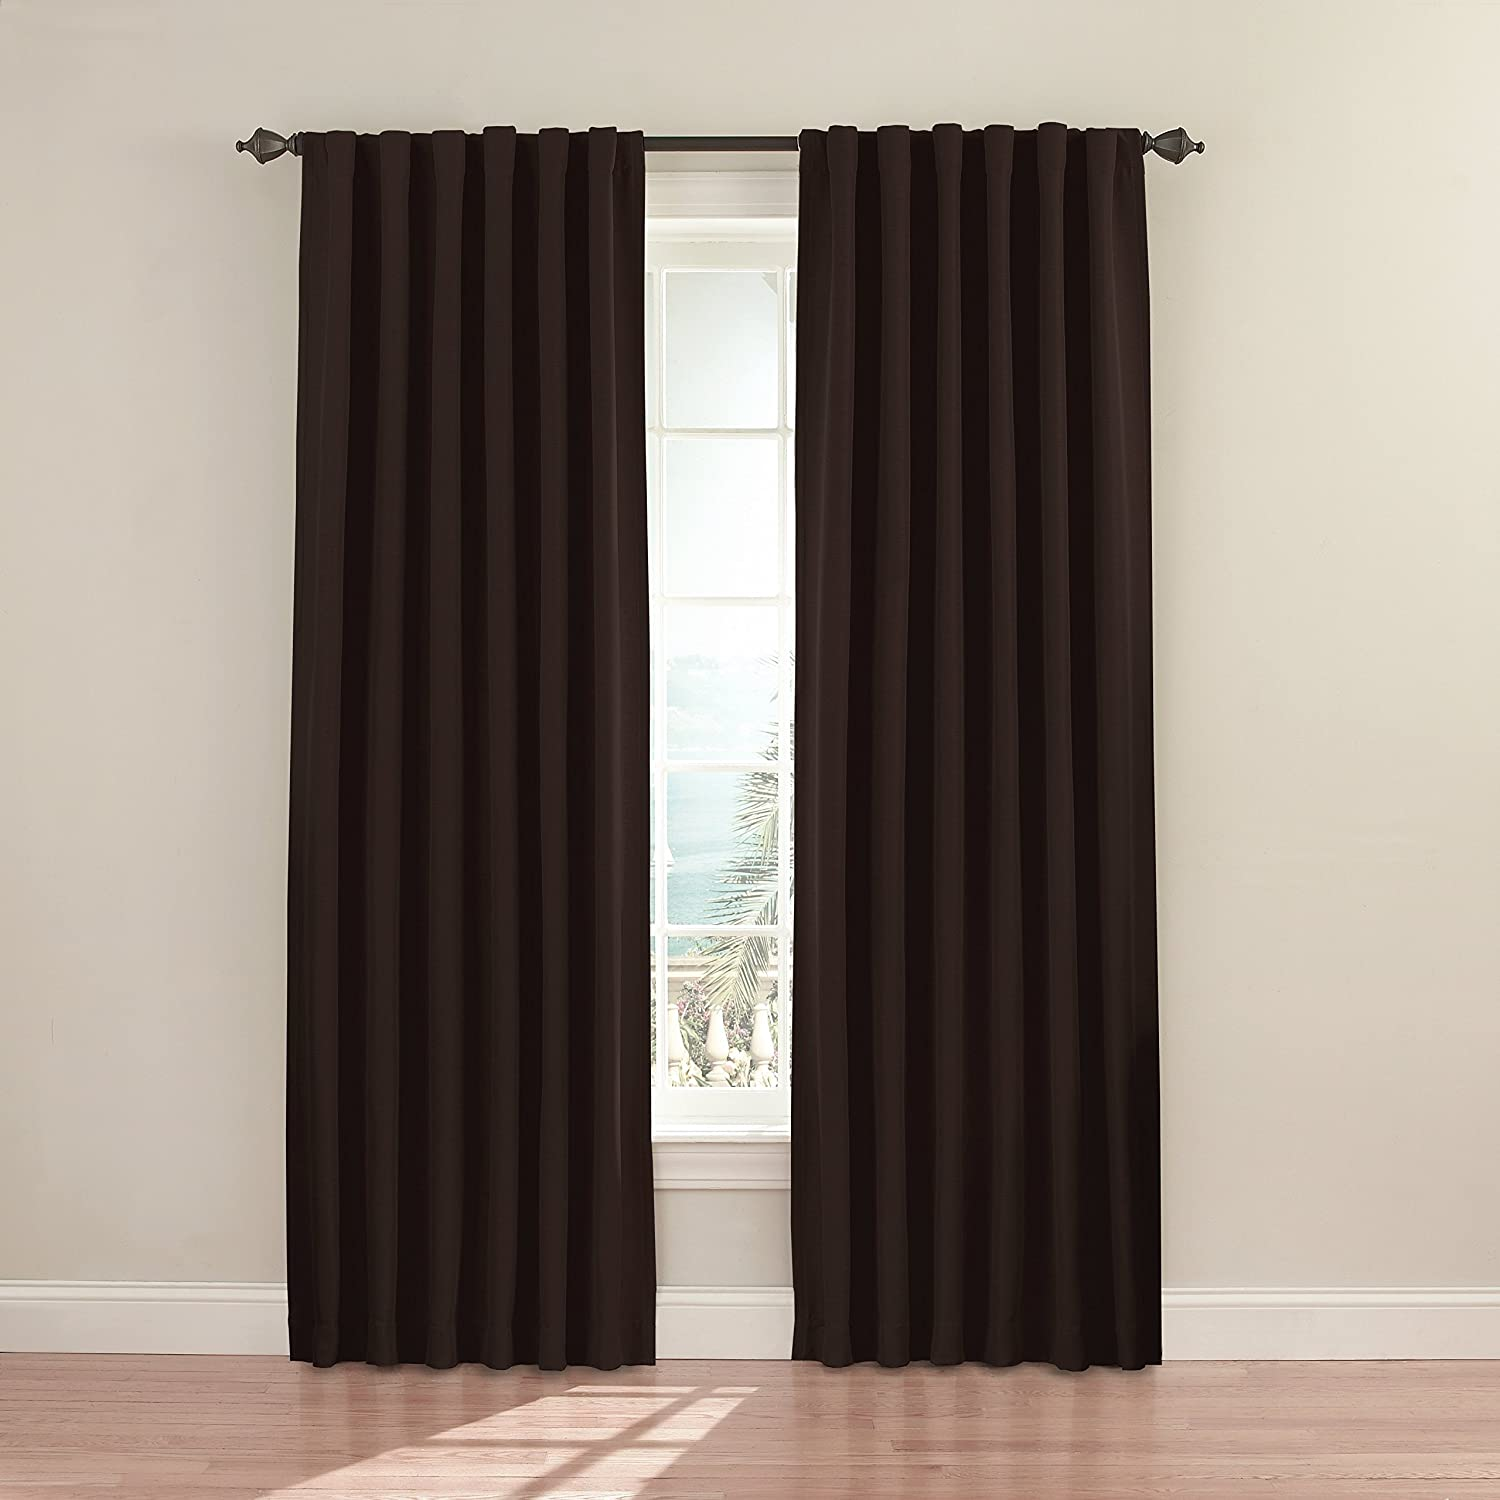 Amazon.com: Eclipse 11353052X084ES Fresno 52-Inch by 84-Inch Blackout  Single Window Curtain Panel, Espresso: Home & Kitchen